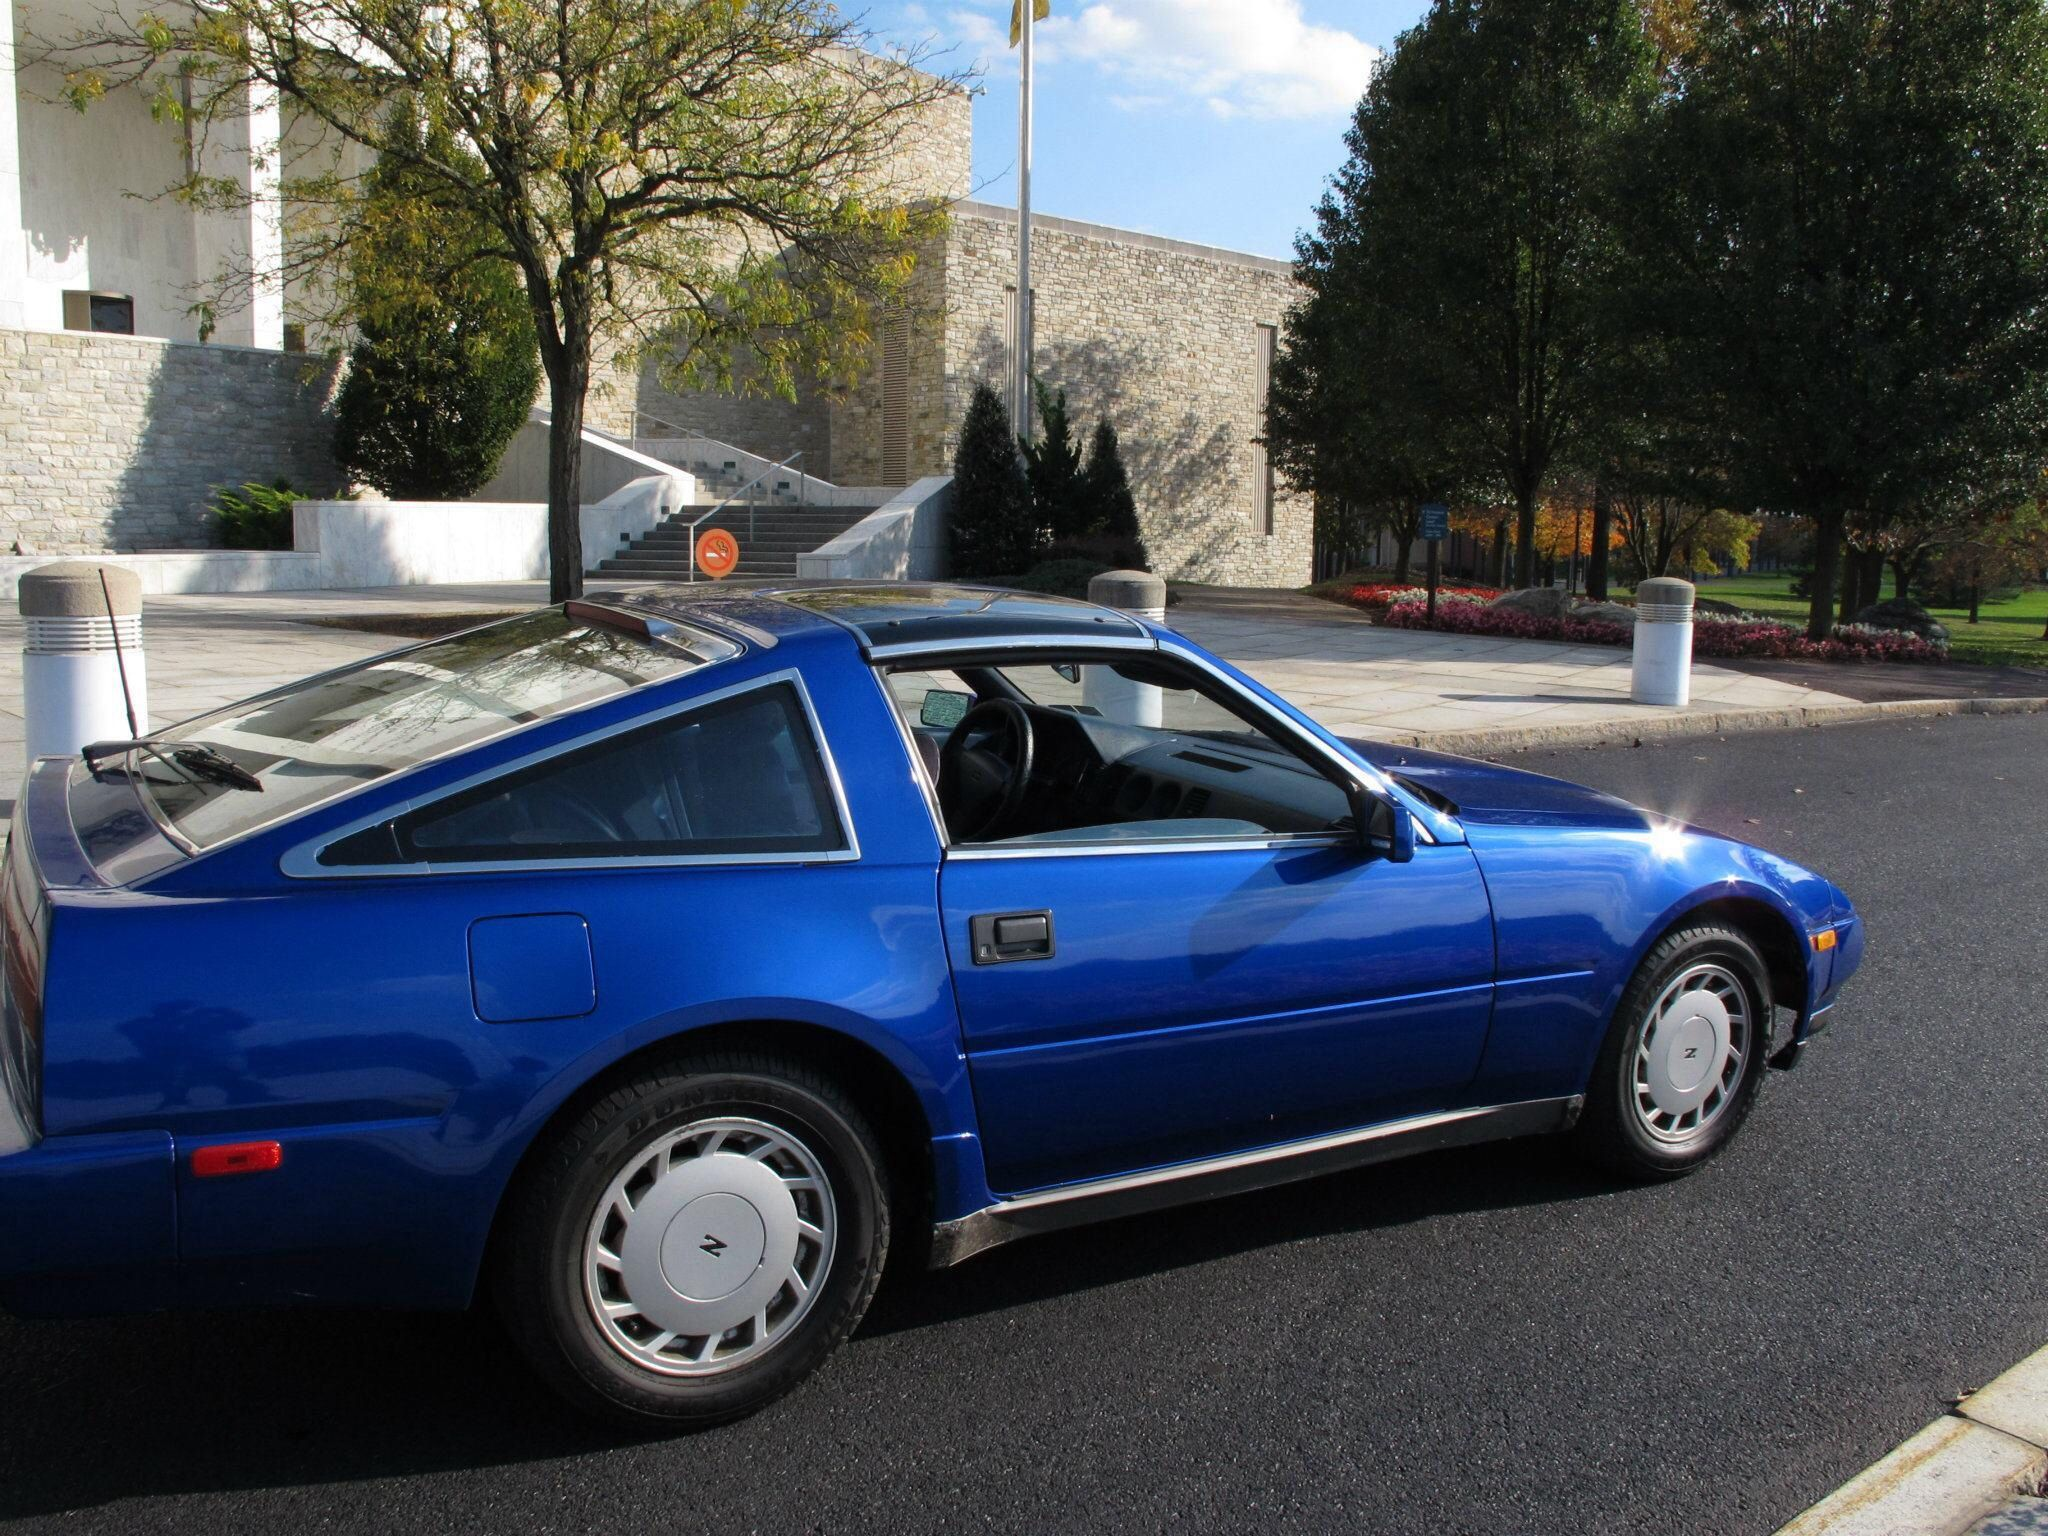 1988 nissan 300zx z31 my dream cars pinterest nissan 300zx nissan and cars. Black Bedroom Furniture Sets. Home Design Ideas